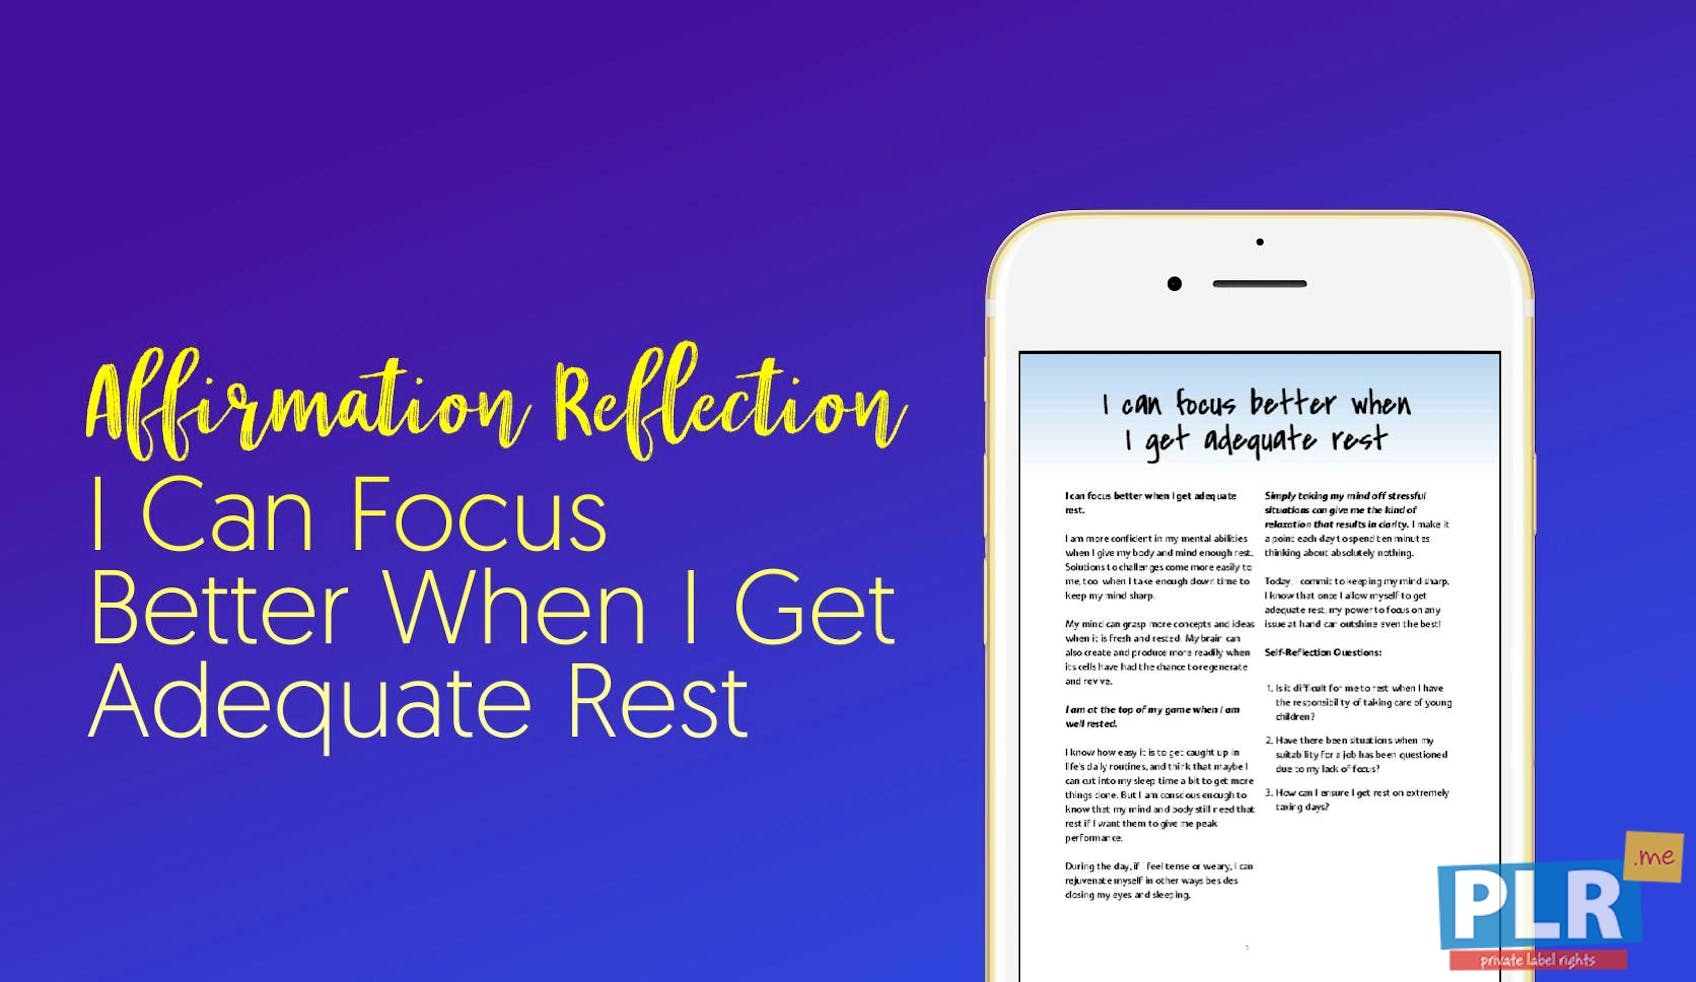 I Can Focus Better When I Get Adequate Rest